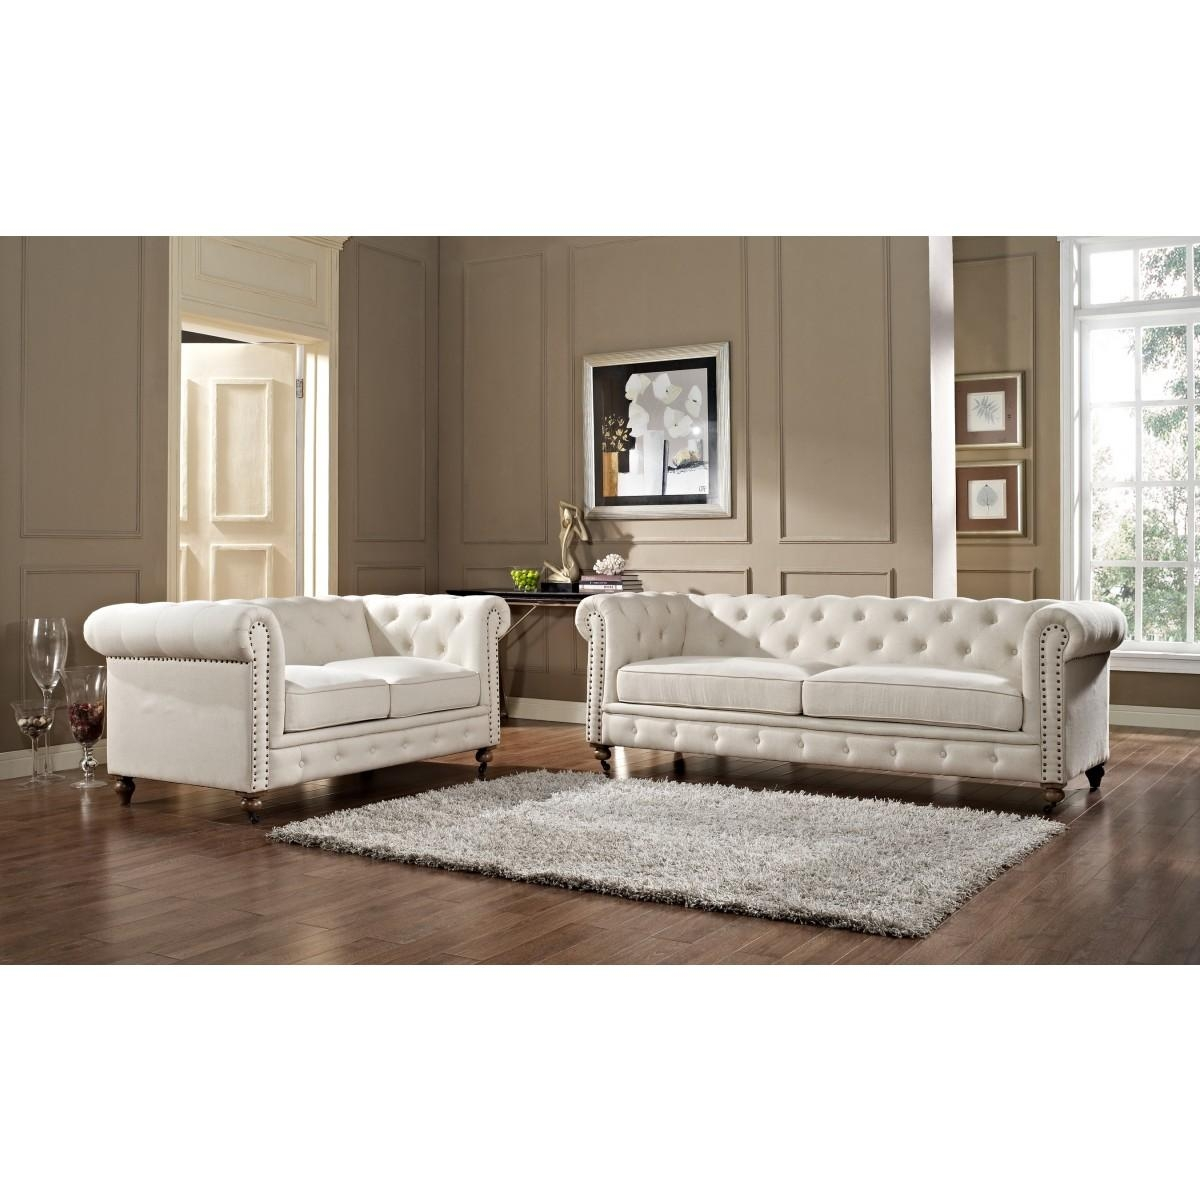 Bringing Fashion To The Culture Of Fabric Sofas – Italmoda With Regard To Contemporary Fabric Sofas (Image 2 of 20)